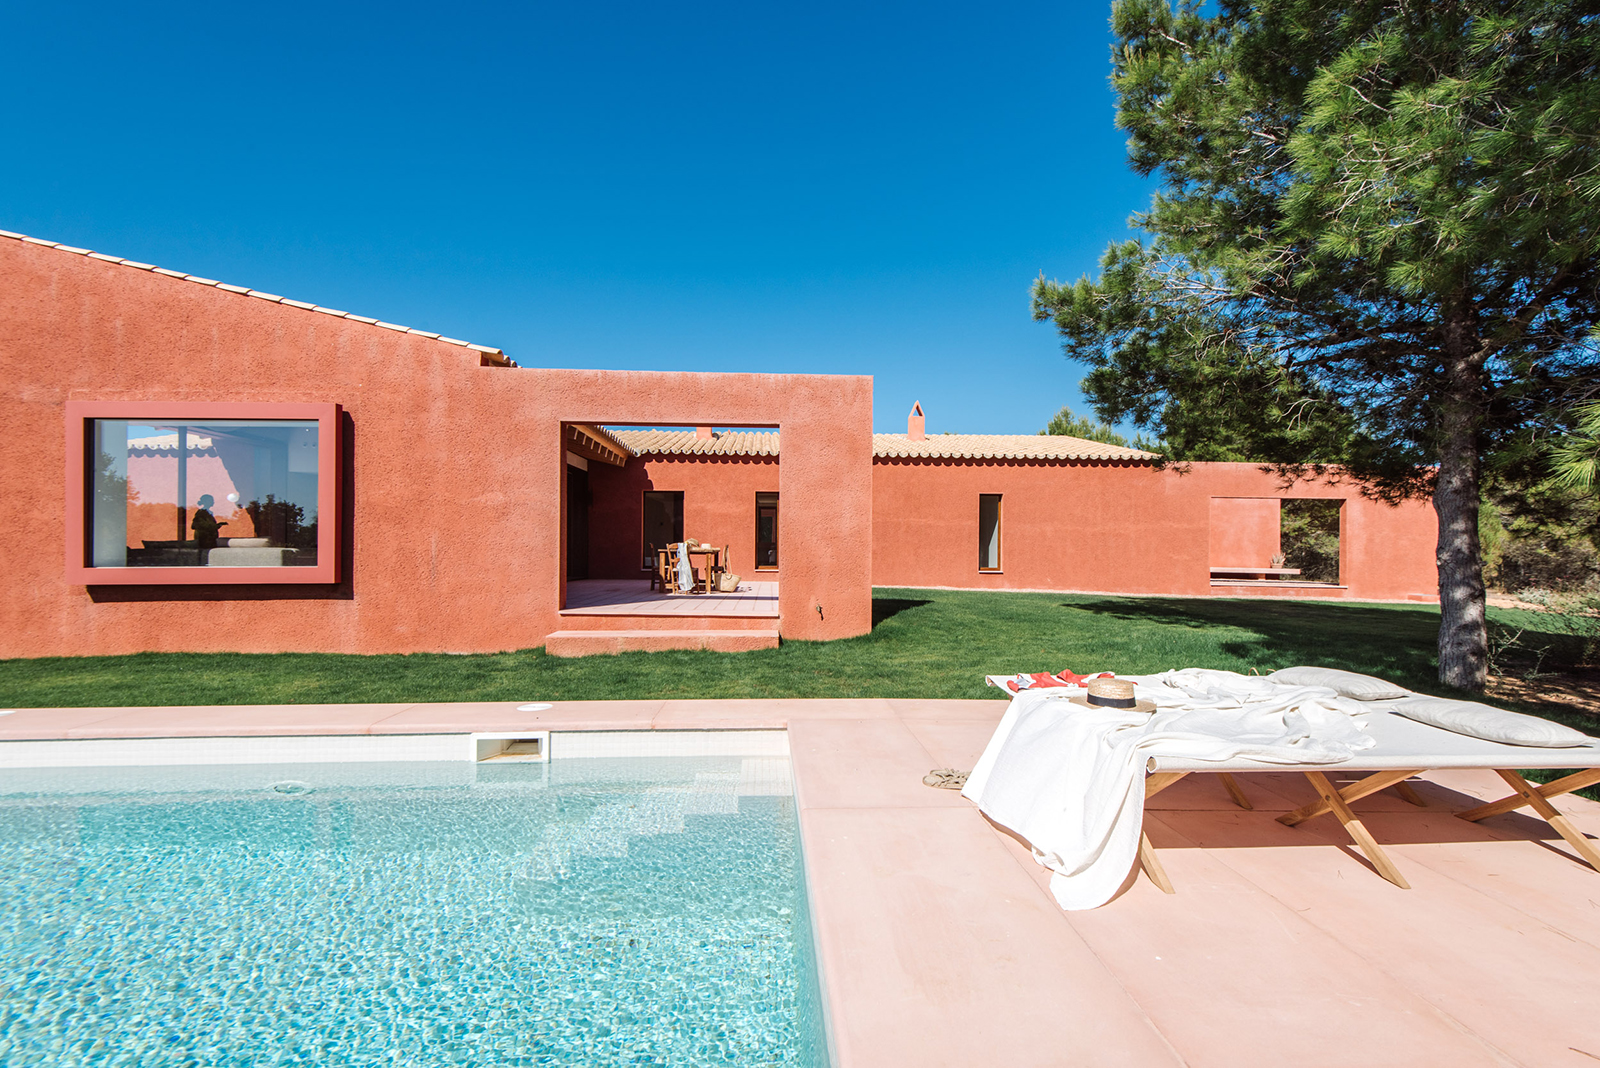 The pink house is for sale via Fantastic Frank for €24m, and while there's still room for its new owner to leave their mark in the basement and via customisations, the Mallorca property is largely complete.